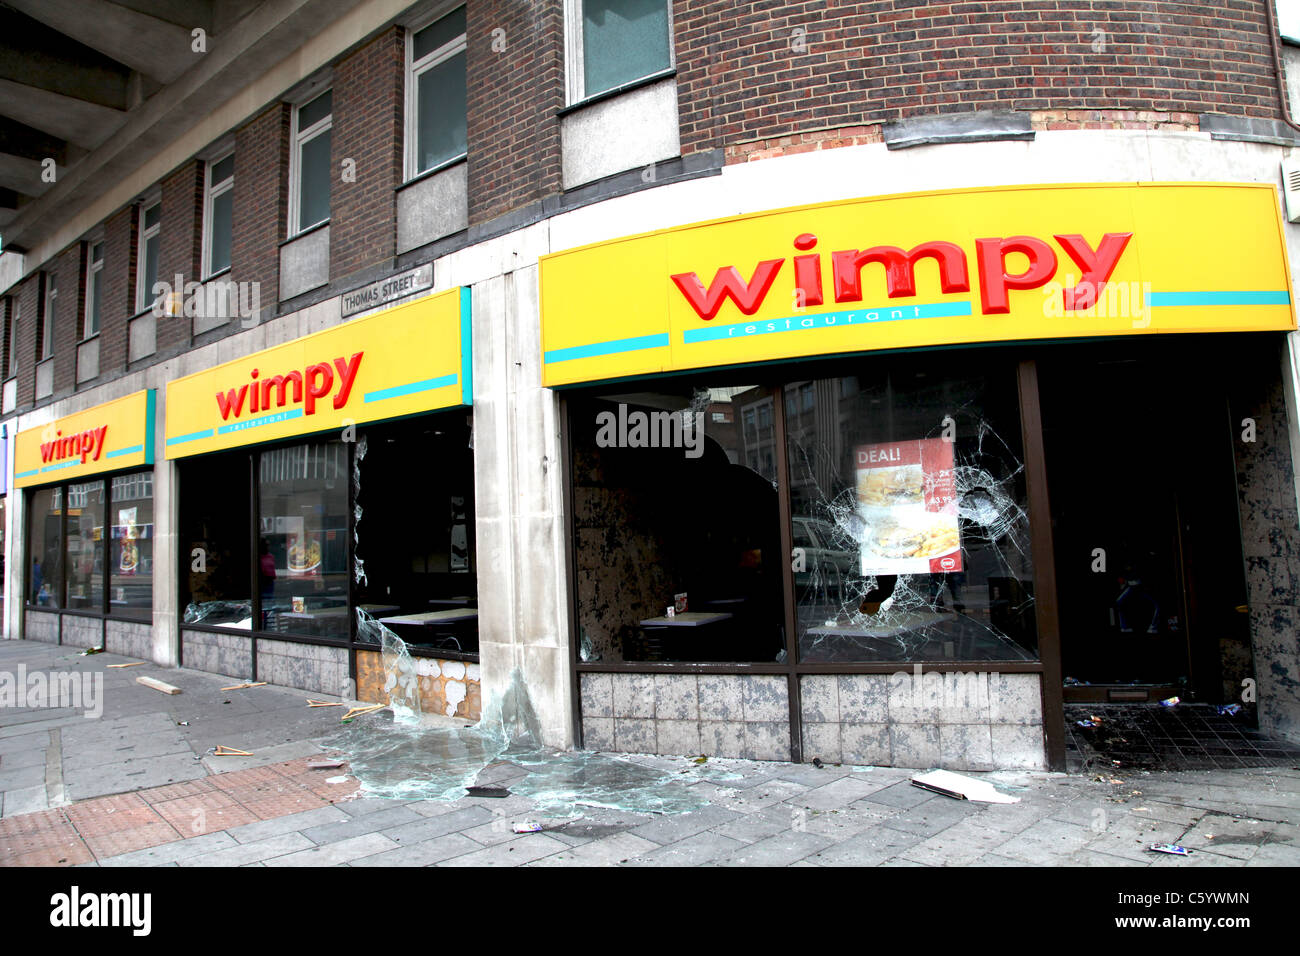 fast food premises broken into and vandalized - Stock Image